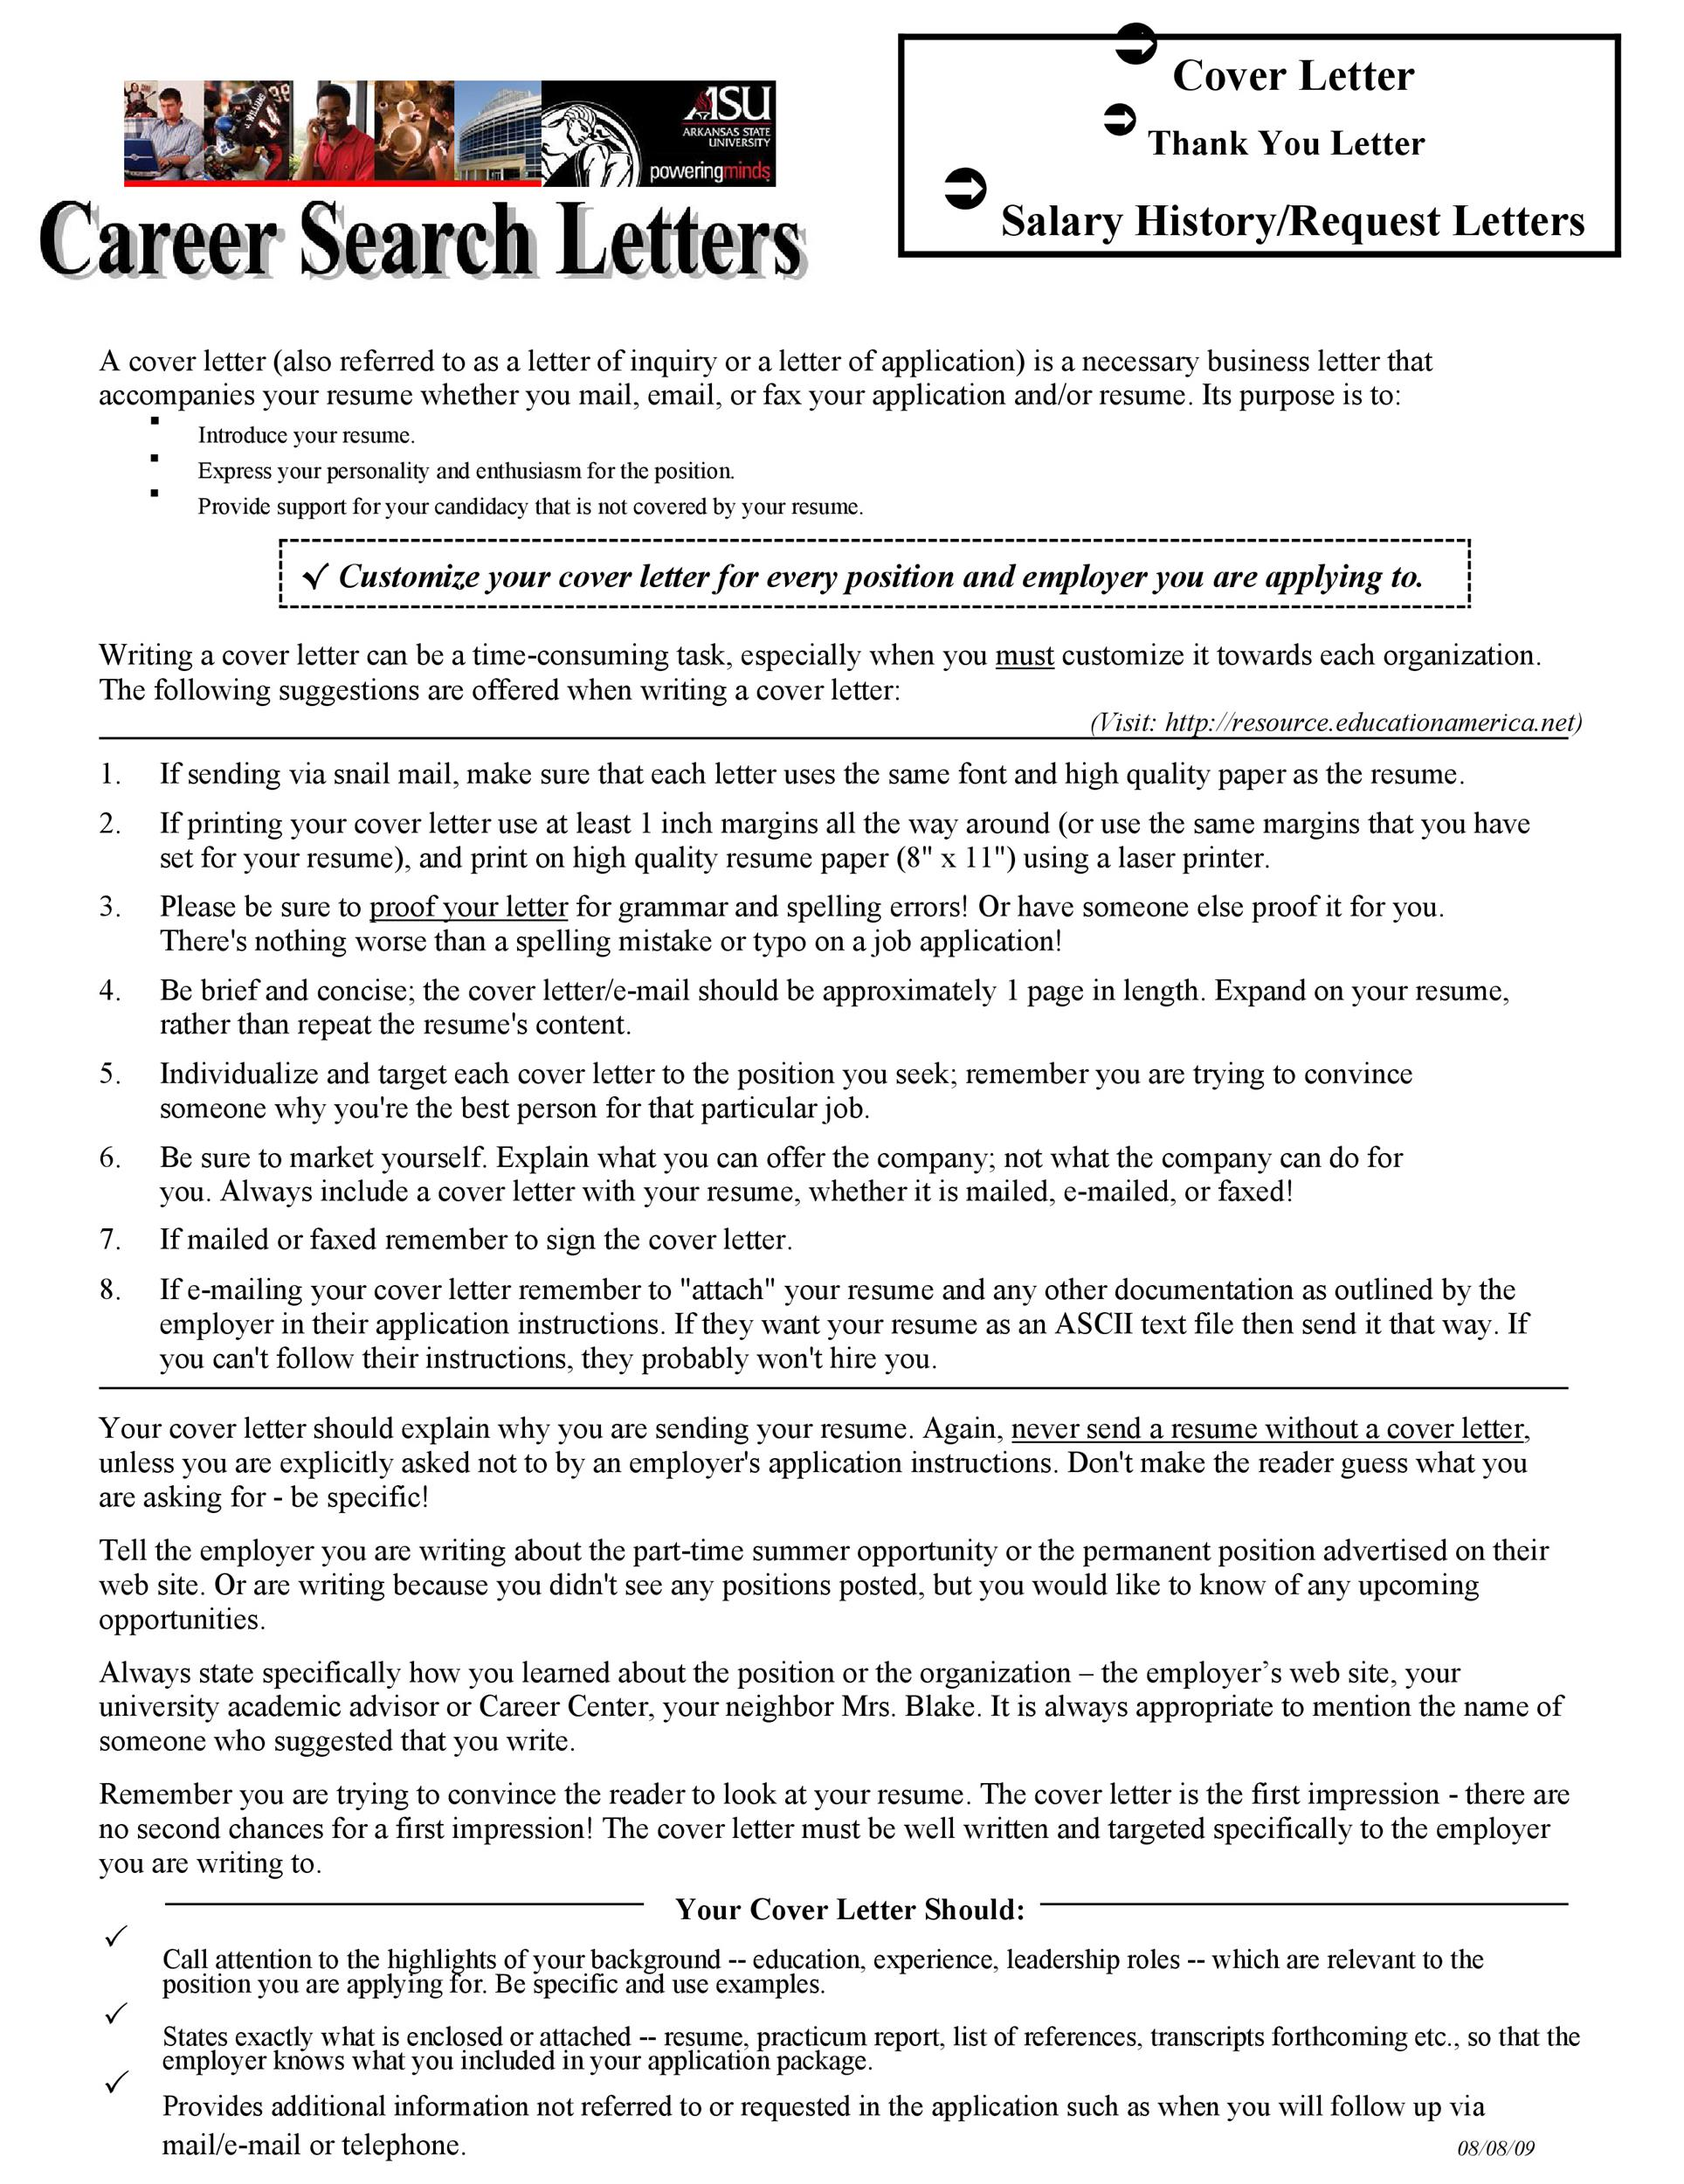 salary requirements in cover letters